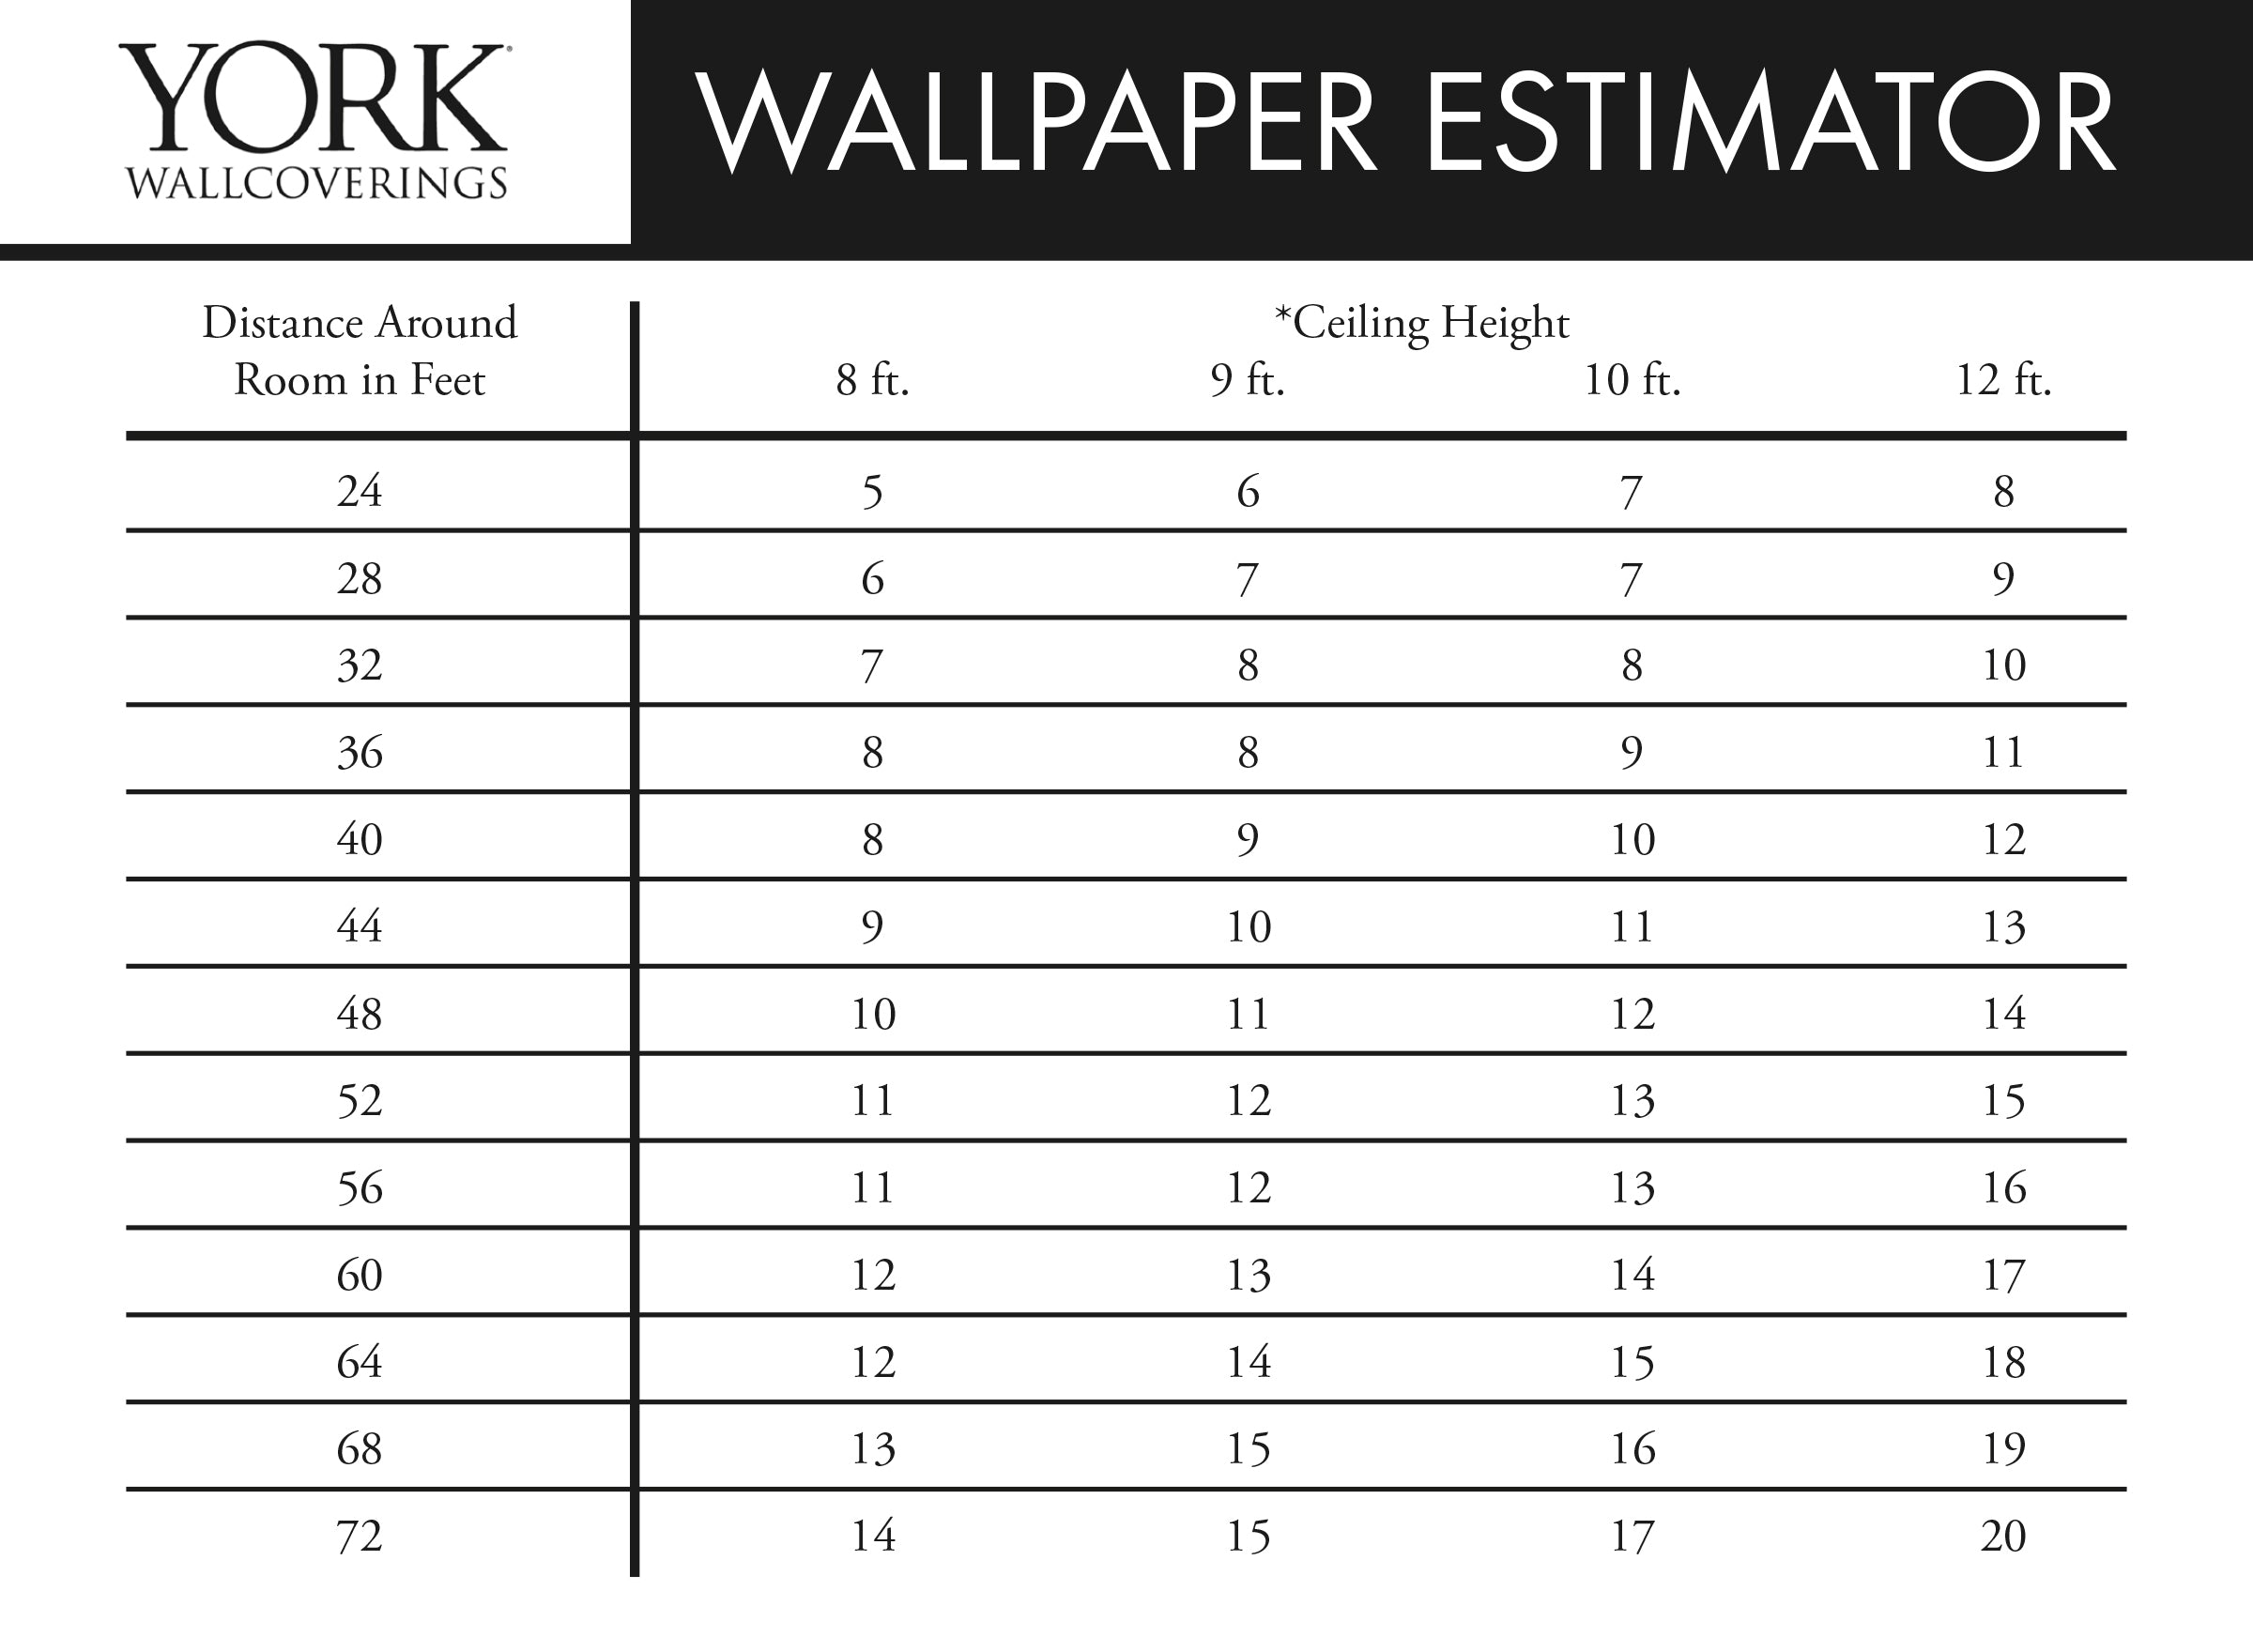 Wallpaper Estimator